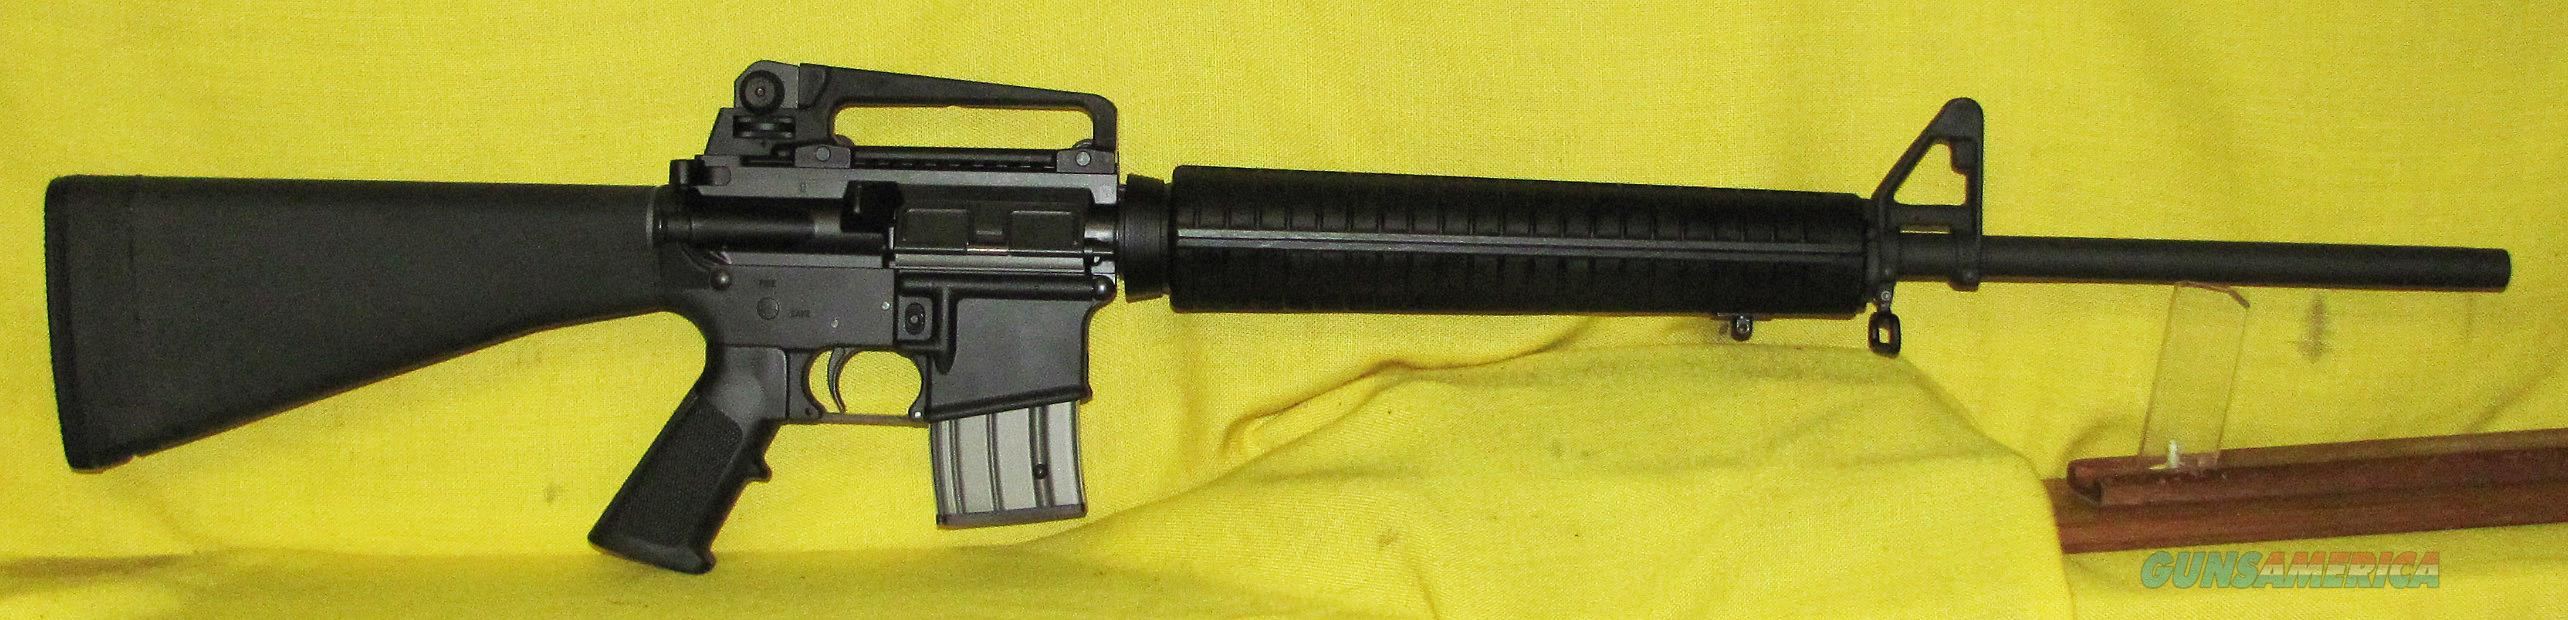 BUSHMASTER XM15-E2S (H-BAR)  Guns > Rifles > Bushmaster Rifles > Complete Rifles